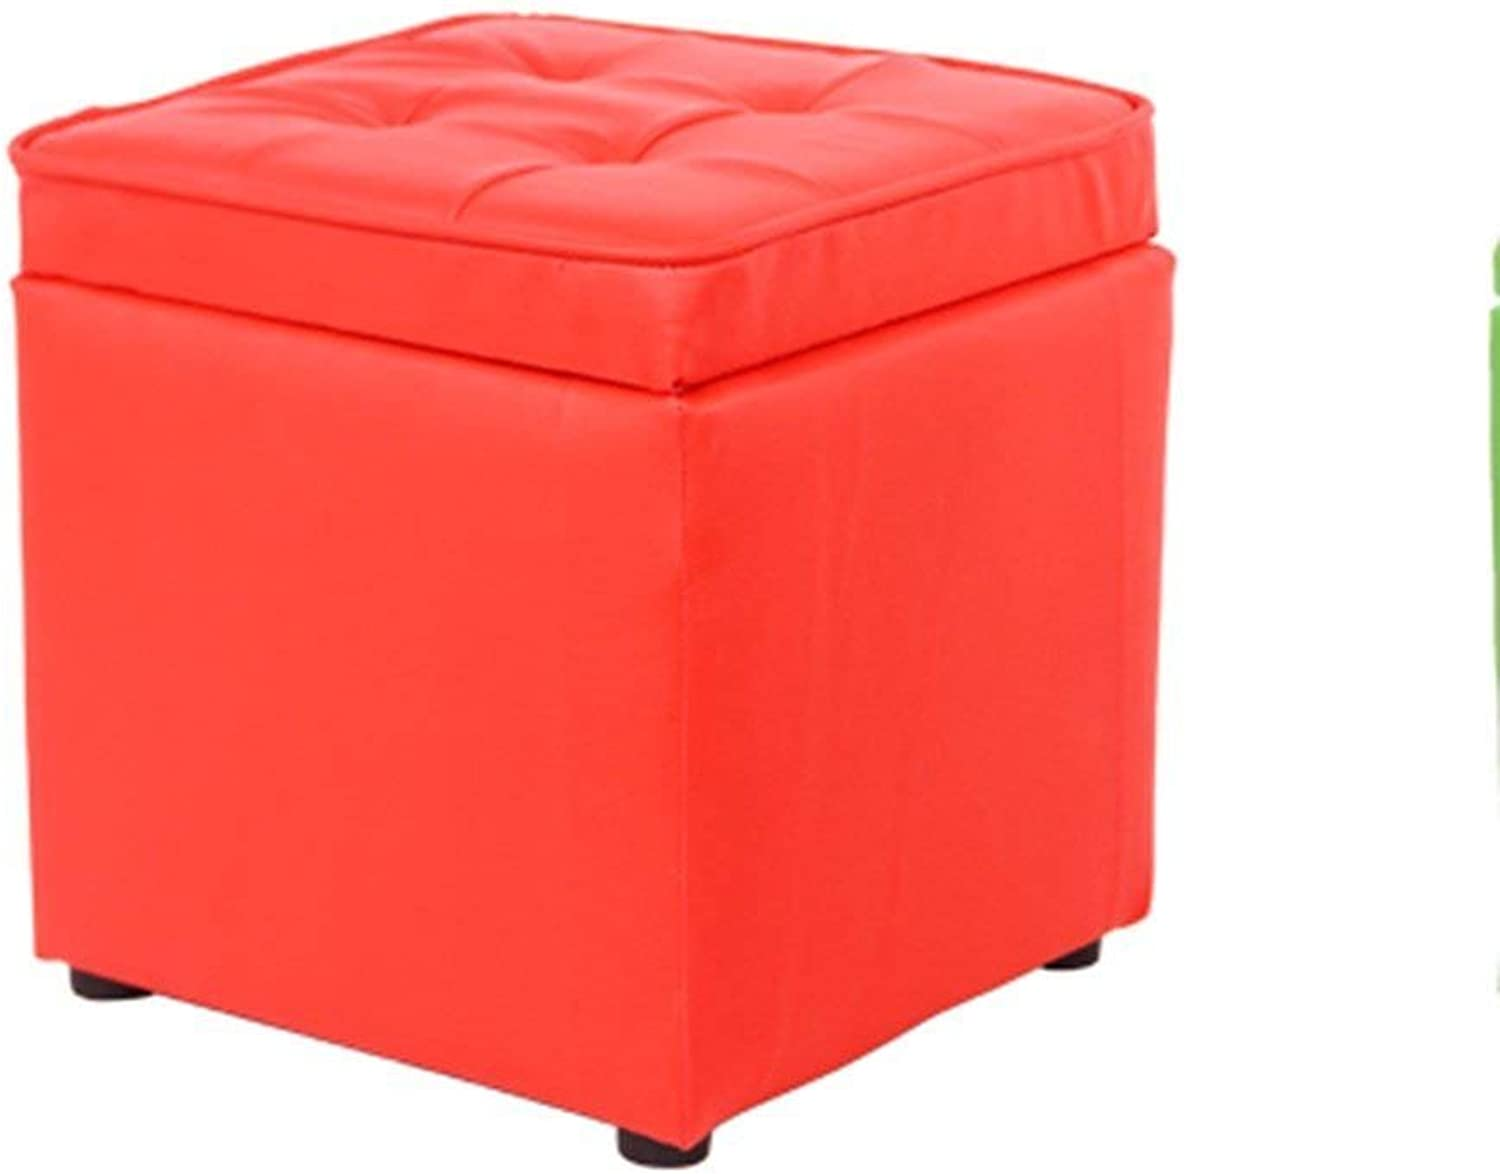 SED Sofa Stool- Small Stool Solid Wood Living Room Stool Change shoes Stool Simple Creative Sofa Stool Storage Stool (red) (28  30cm) -Storage Stool